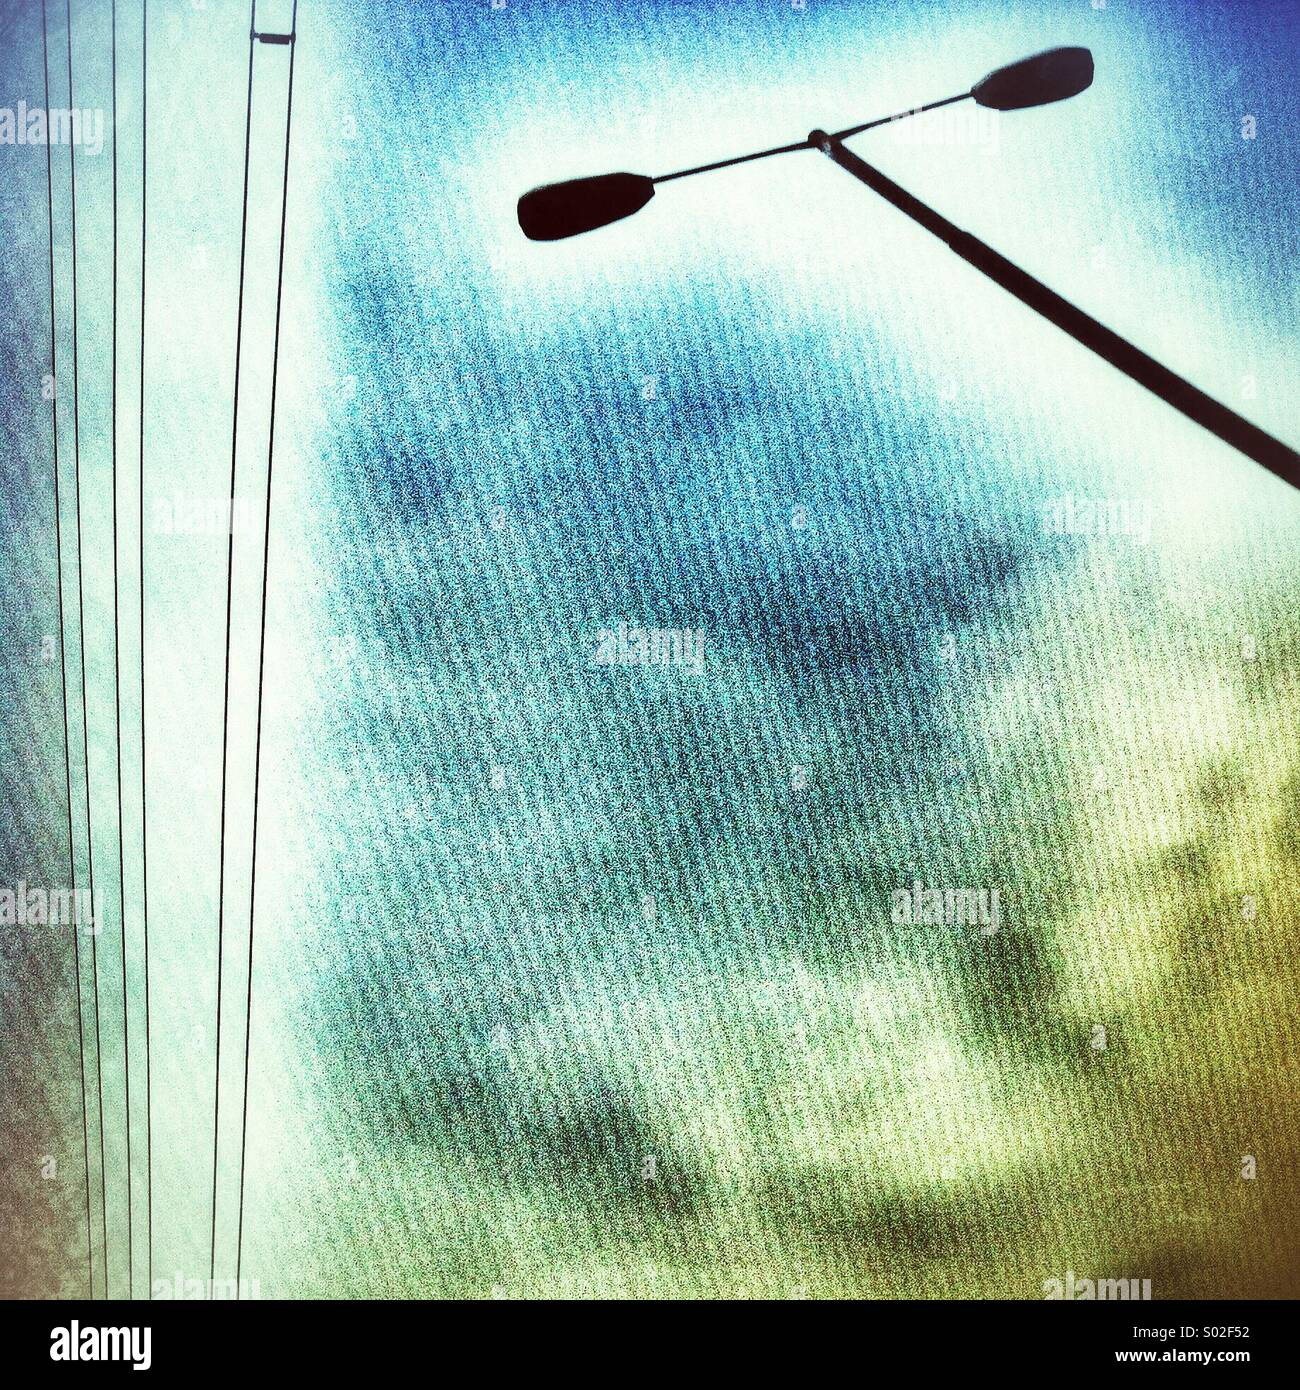 Street Light and Power Lines Photo Stock